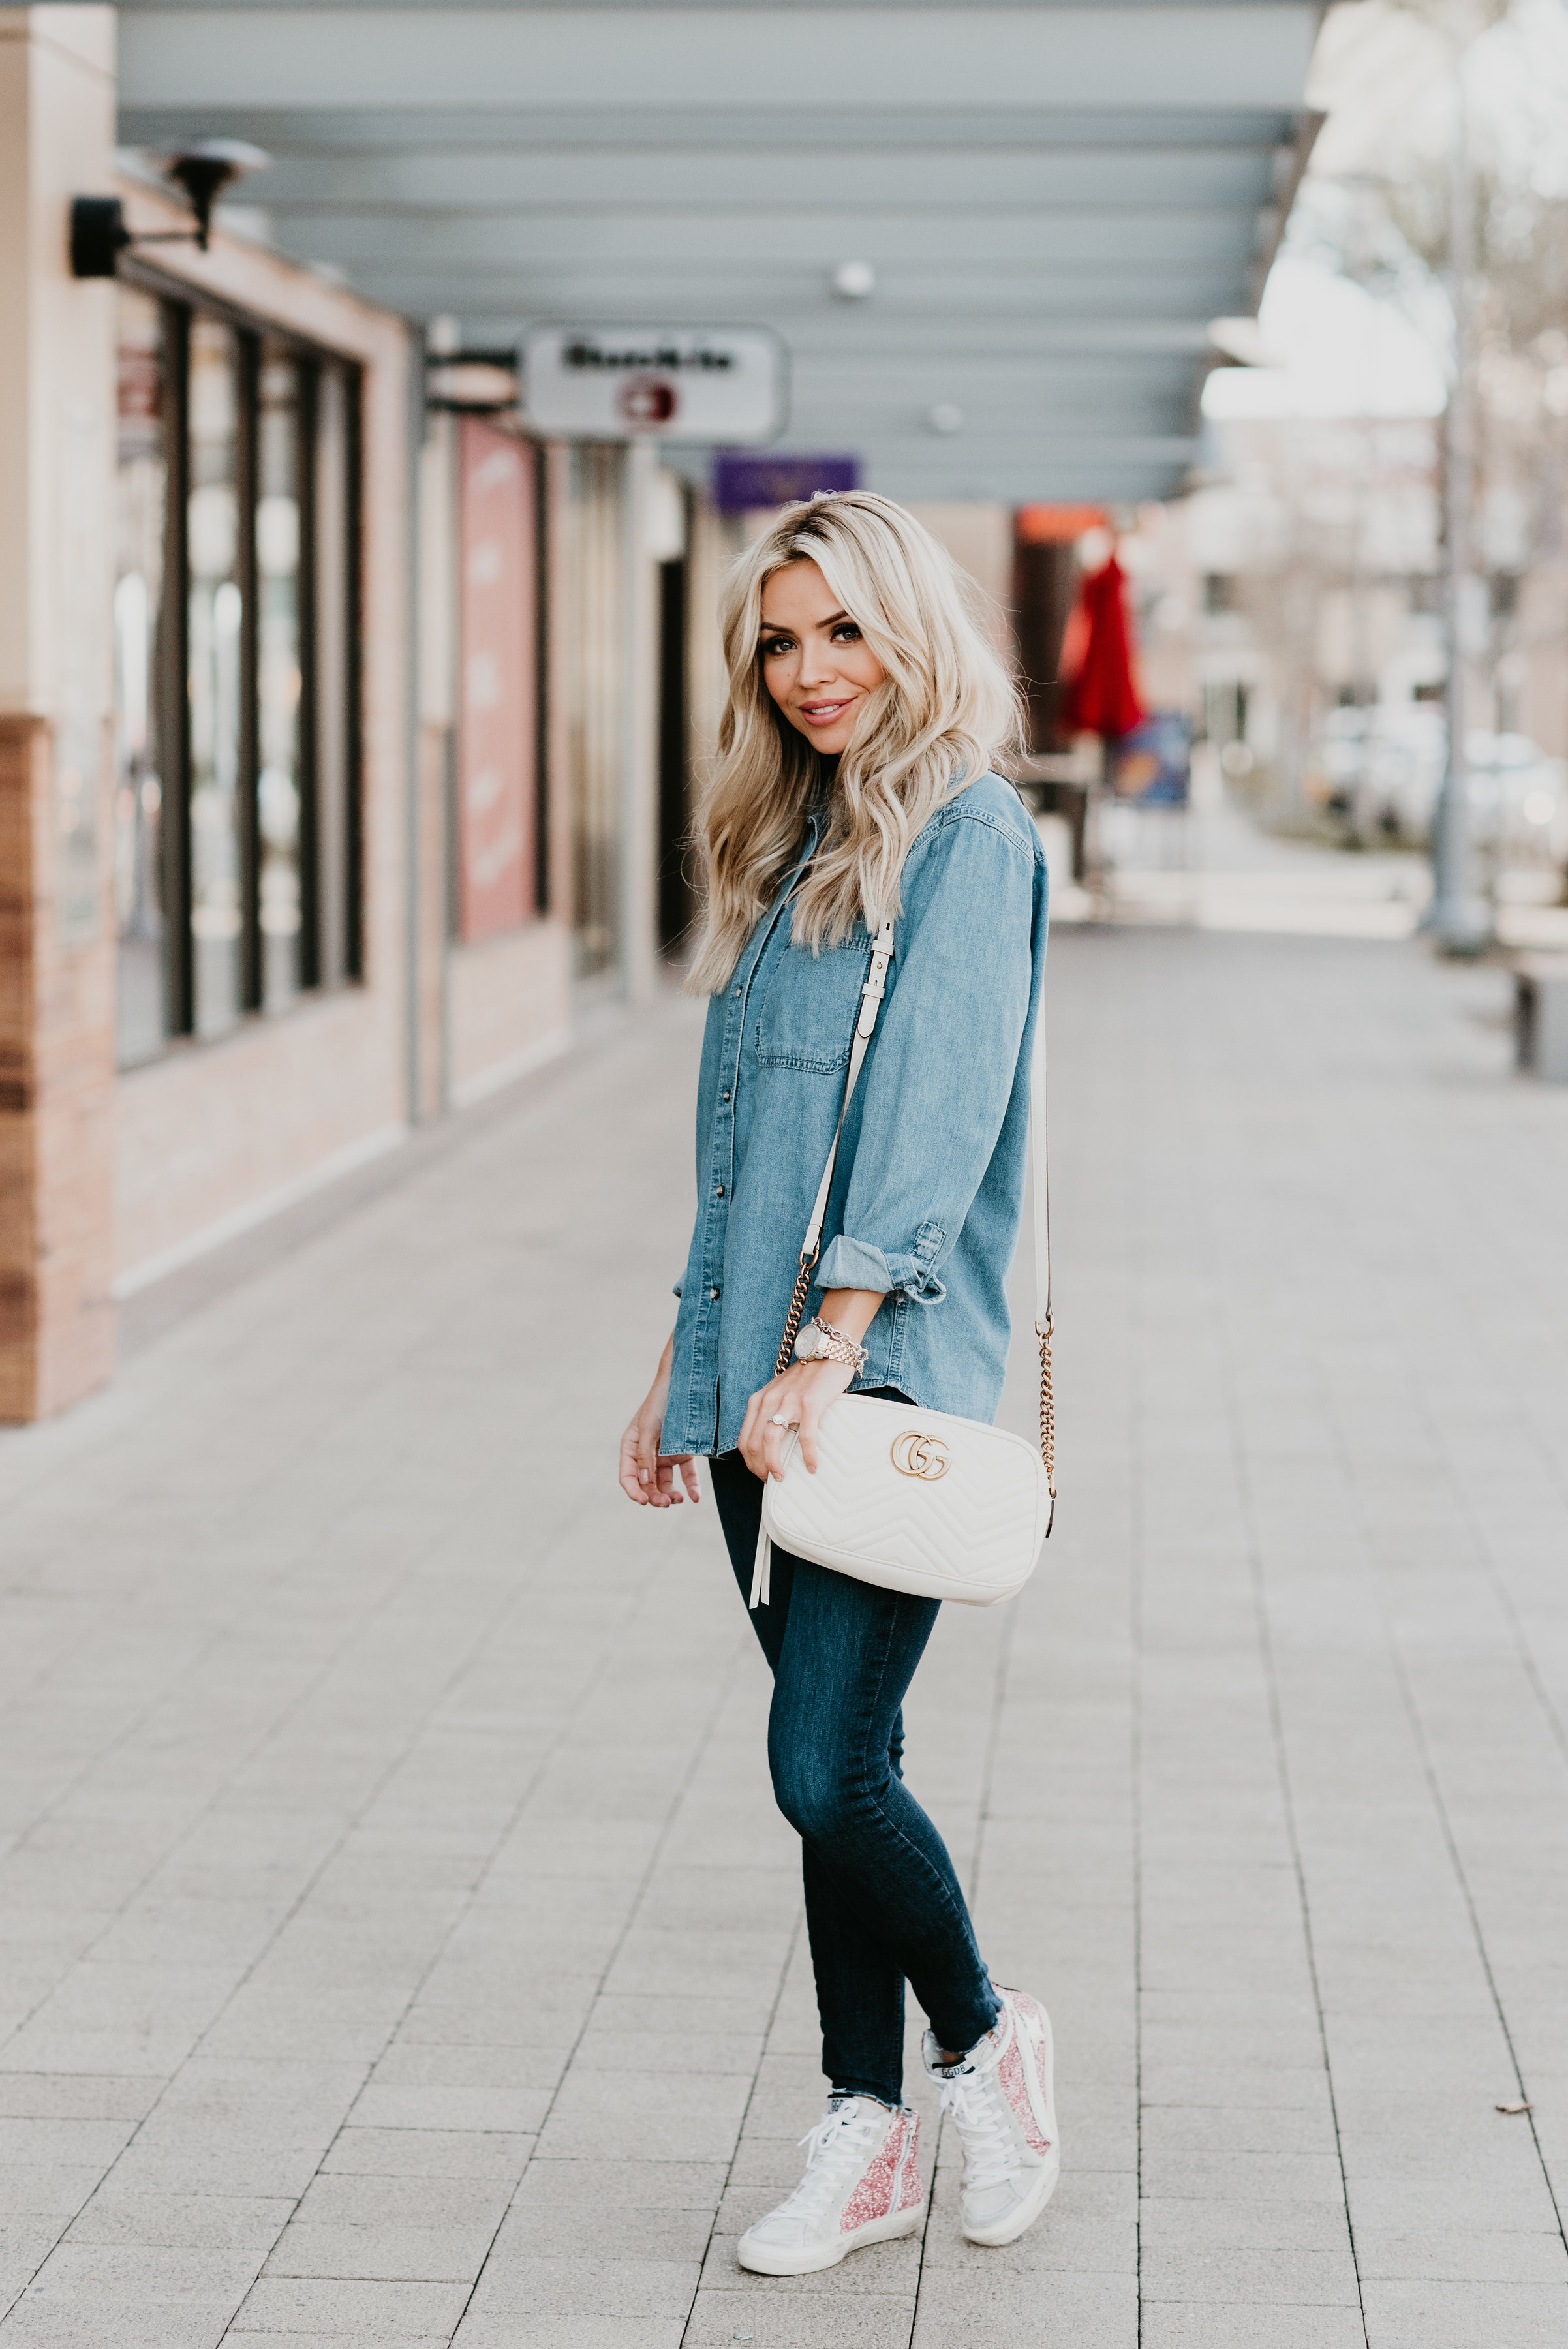 75976d25fde Listing SEVERAL ways to style a chambray shirt! Chambray shirts are a  closet staple and